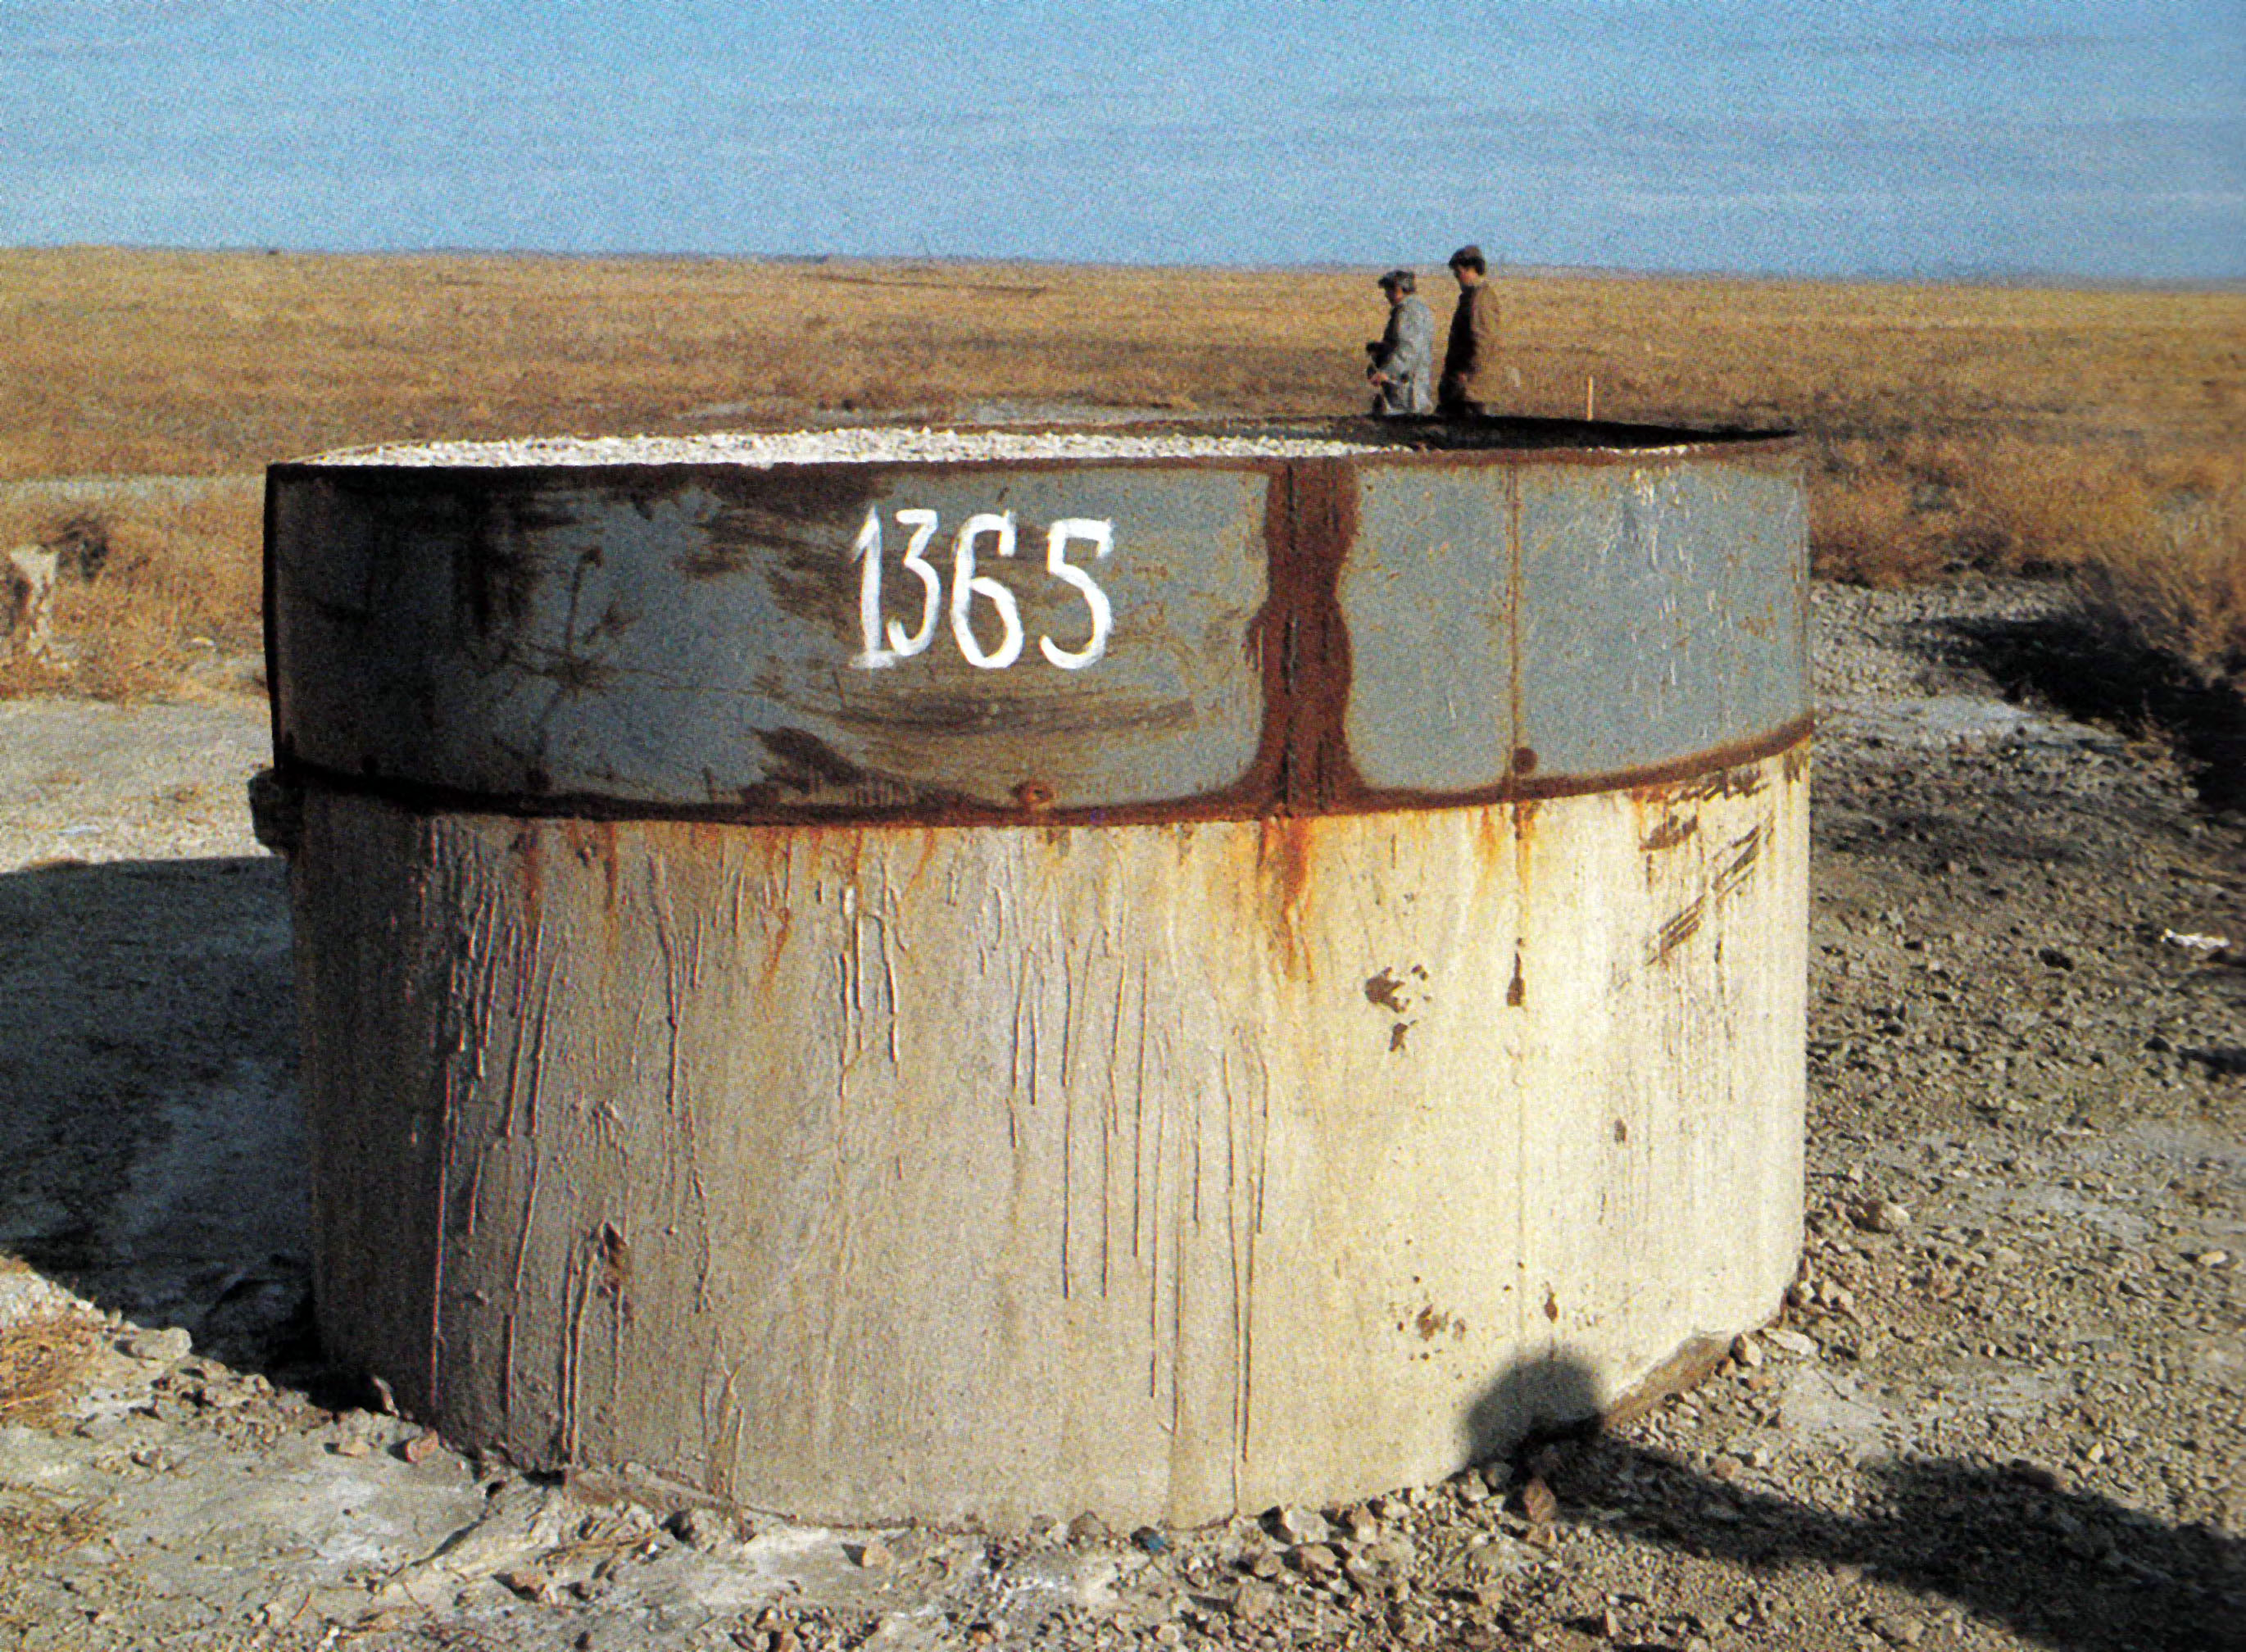 The mark 1365 on the test site of the nuclear area is not just a number, but a historical landmark in the life of the testing area and its people.